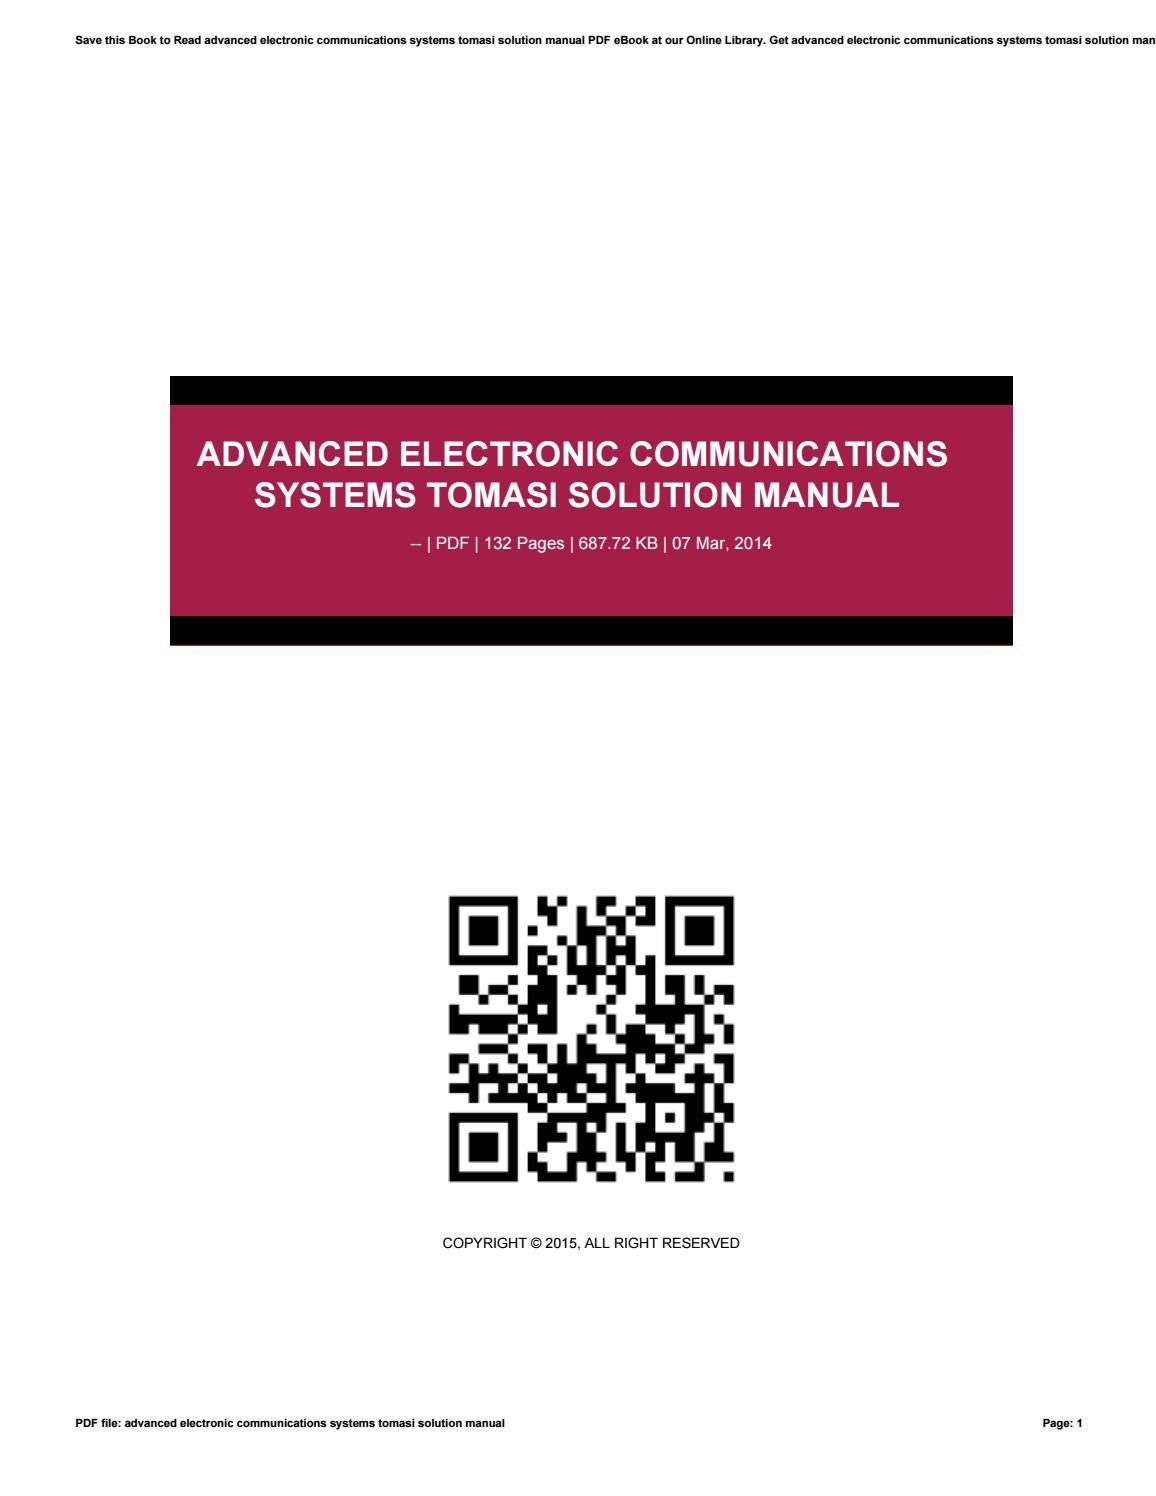 Advanced Electronic Communications Systems Tomasi Solution Manual By Harvard Ac Uk928 Issuu